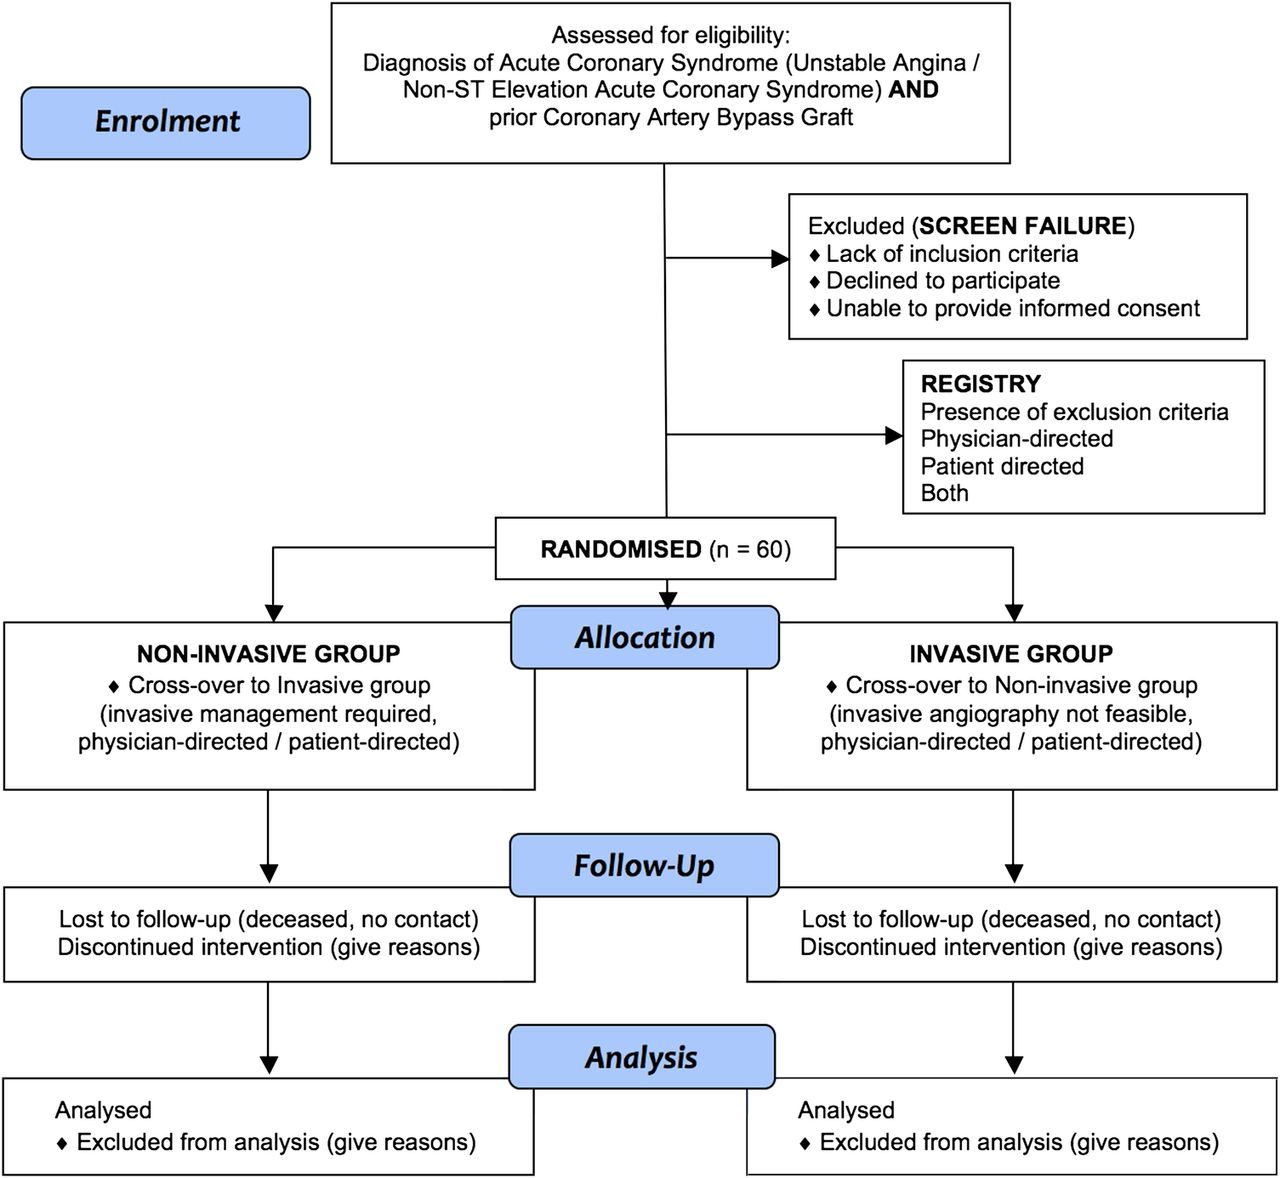 Noninvasive versus invasive management in patients with prior coronary artery bypass surgery